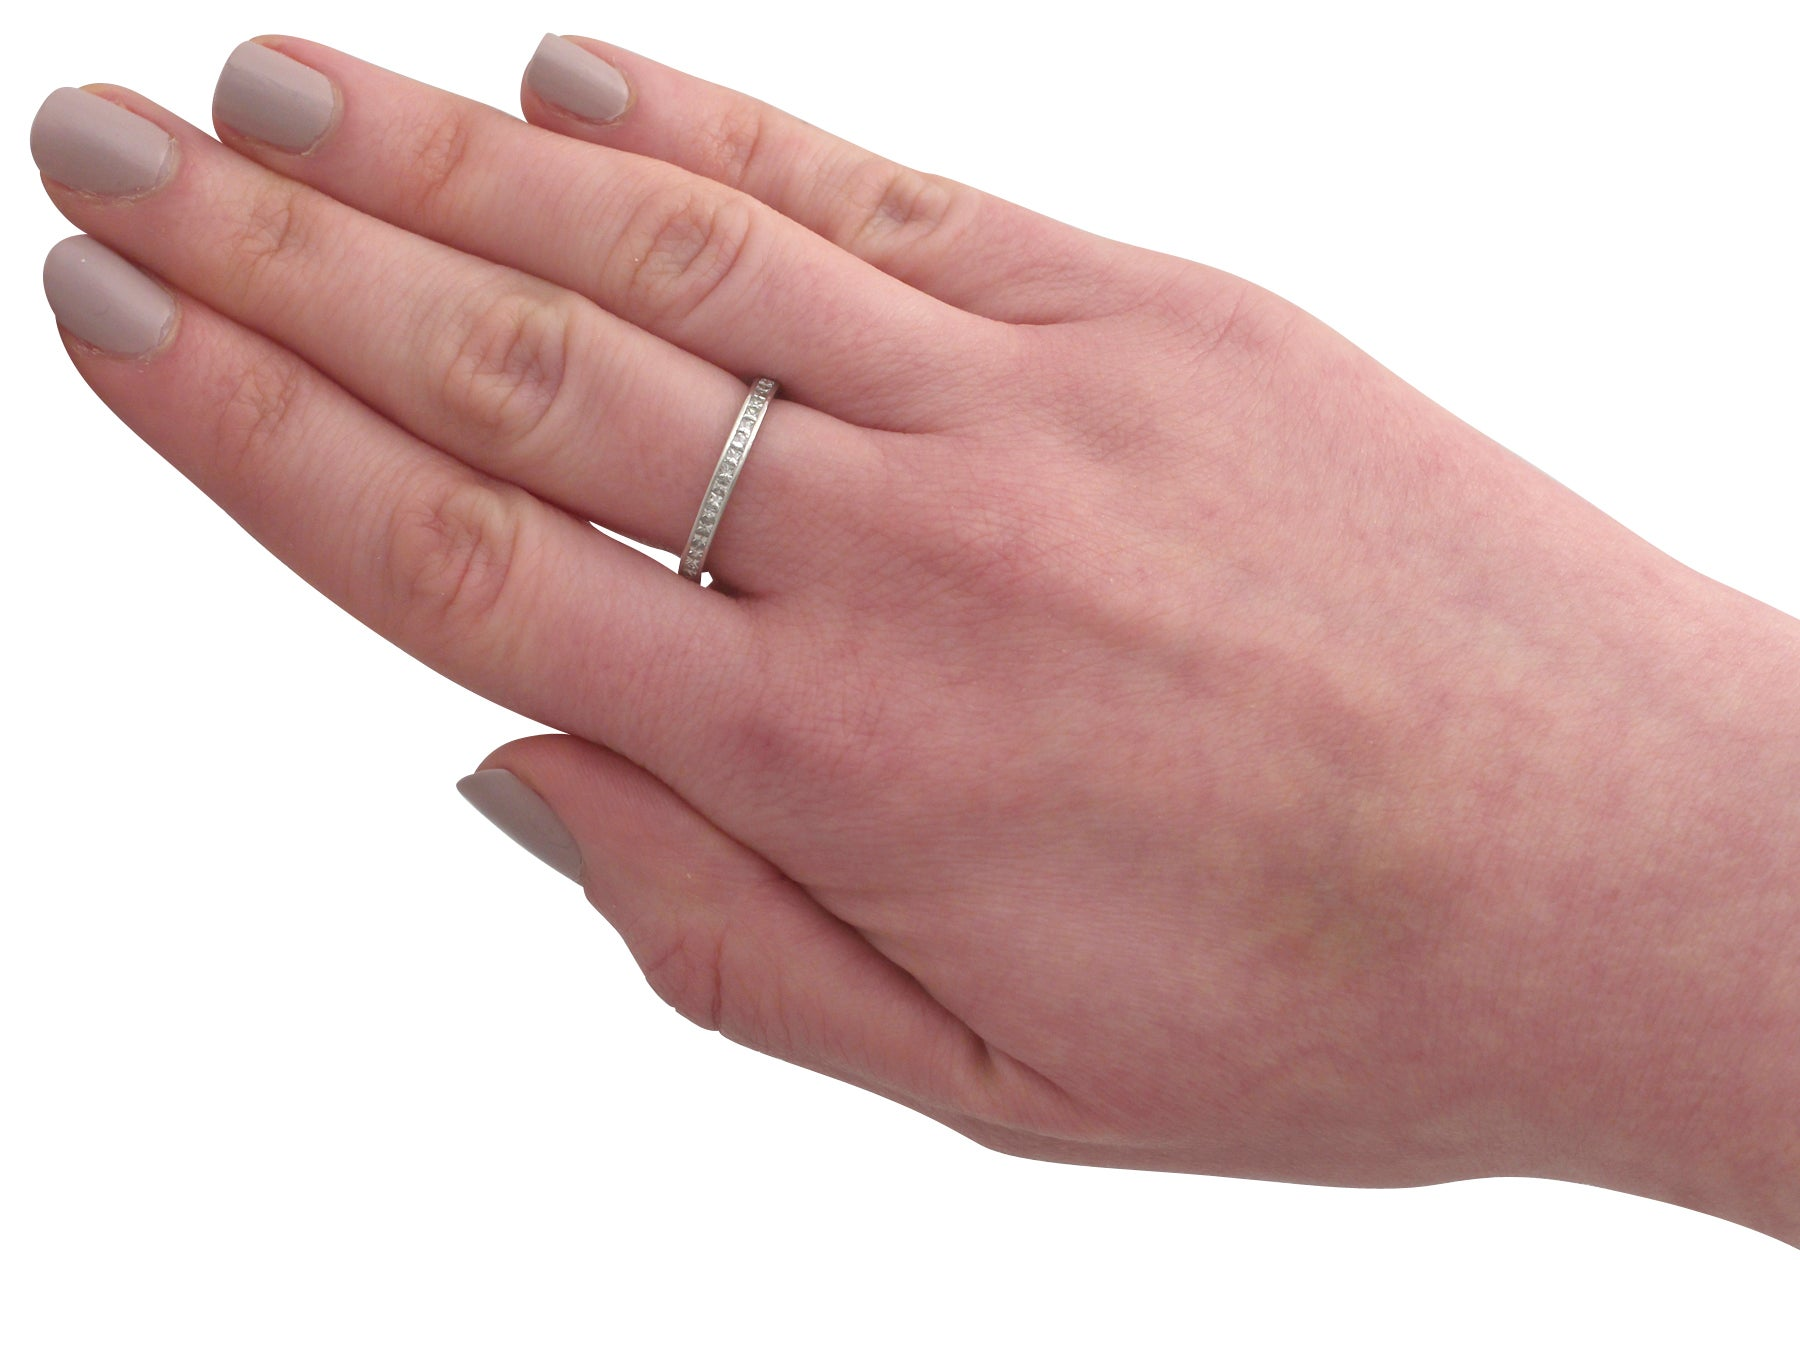 1960s Diamond and Platinum Full Eternity Ring For Sale at 1stdibs